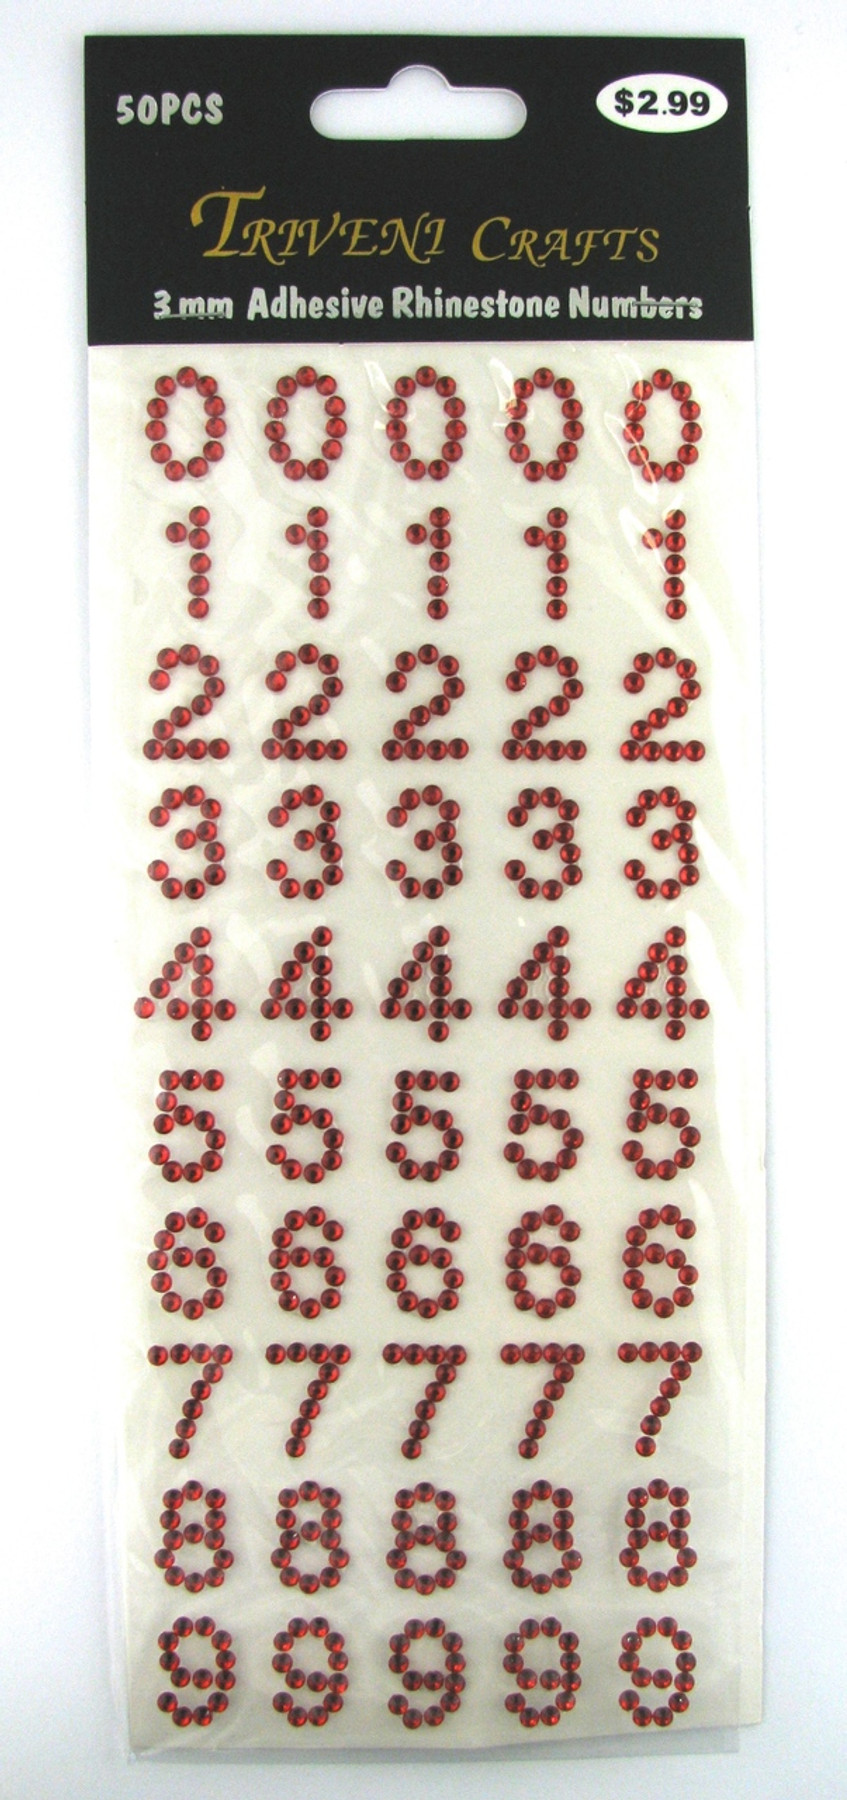 16mm Red Numbers Flatback Rhinestones (50 pcs) Self-Adhesive - Easy Peel Strips